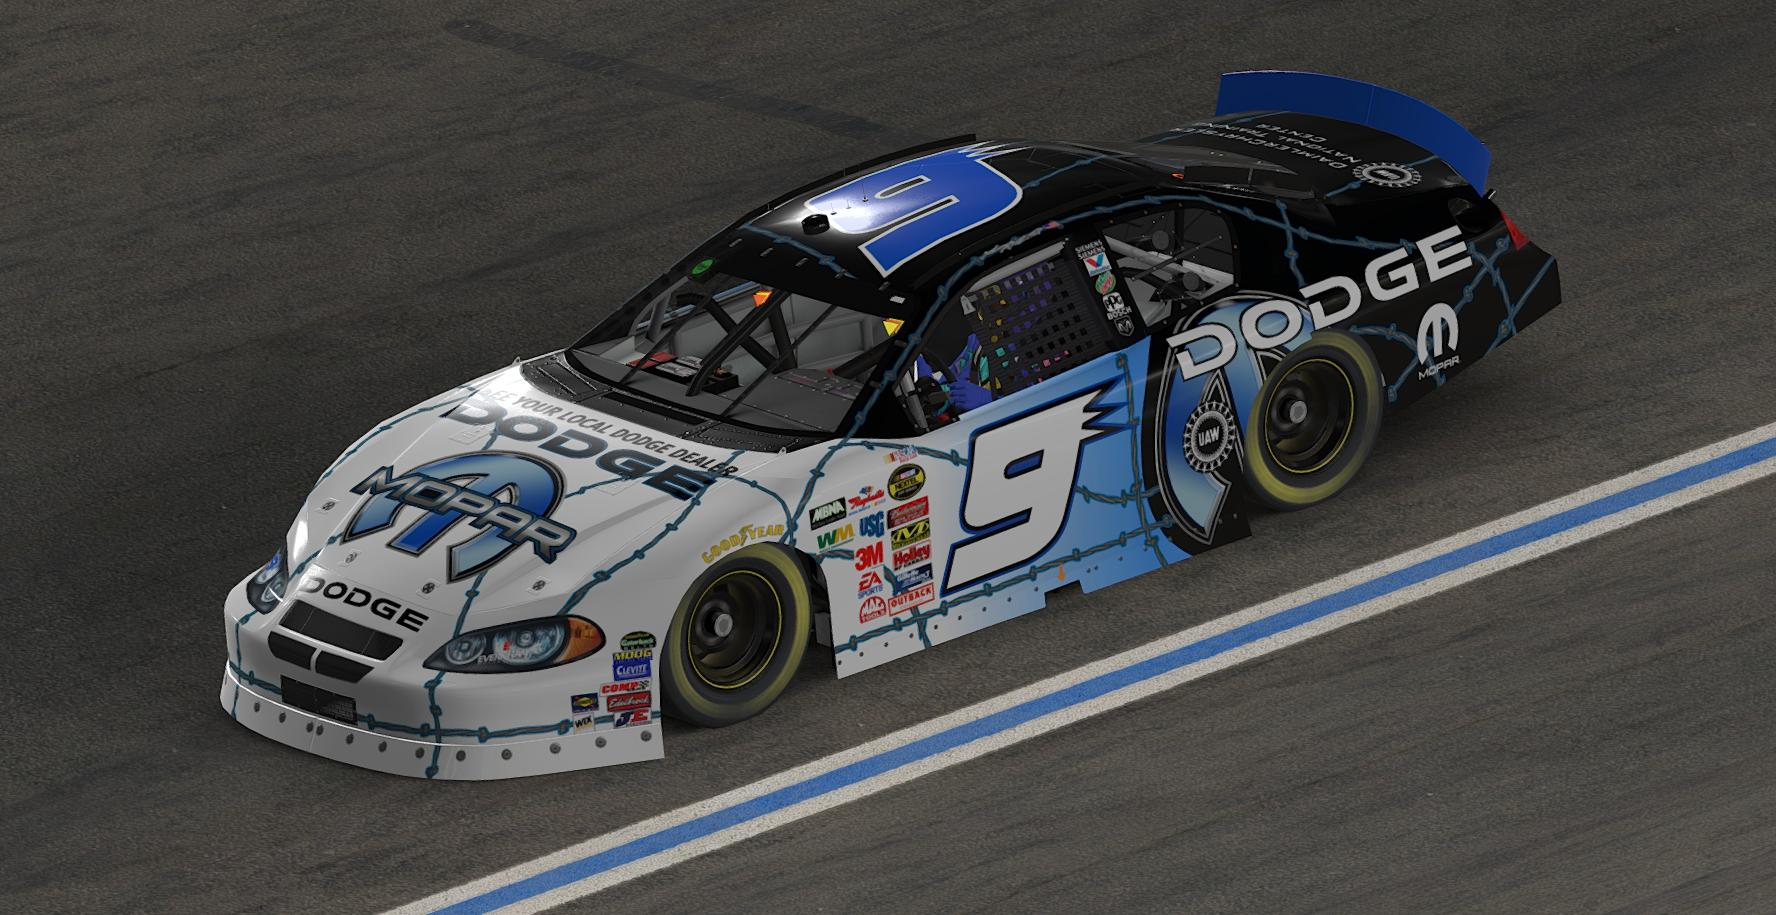 Preview of Kasey Kahne Mopar 2004 without the big 9s by Jordan Werth